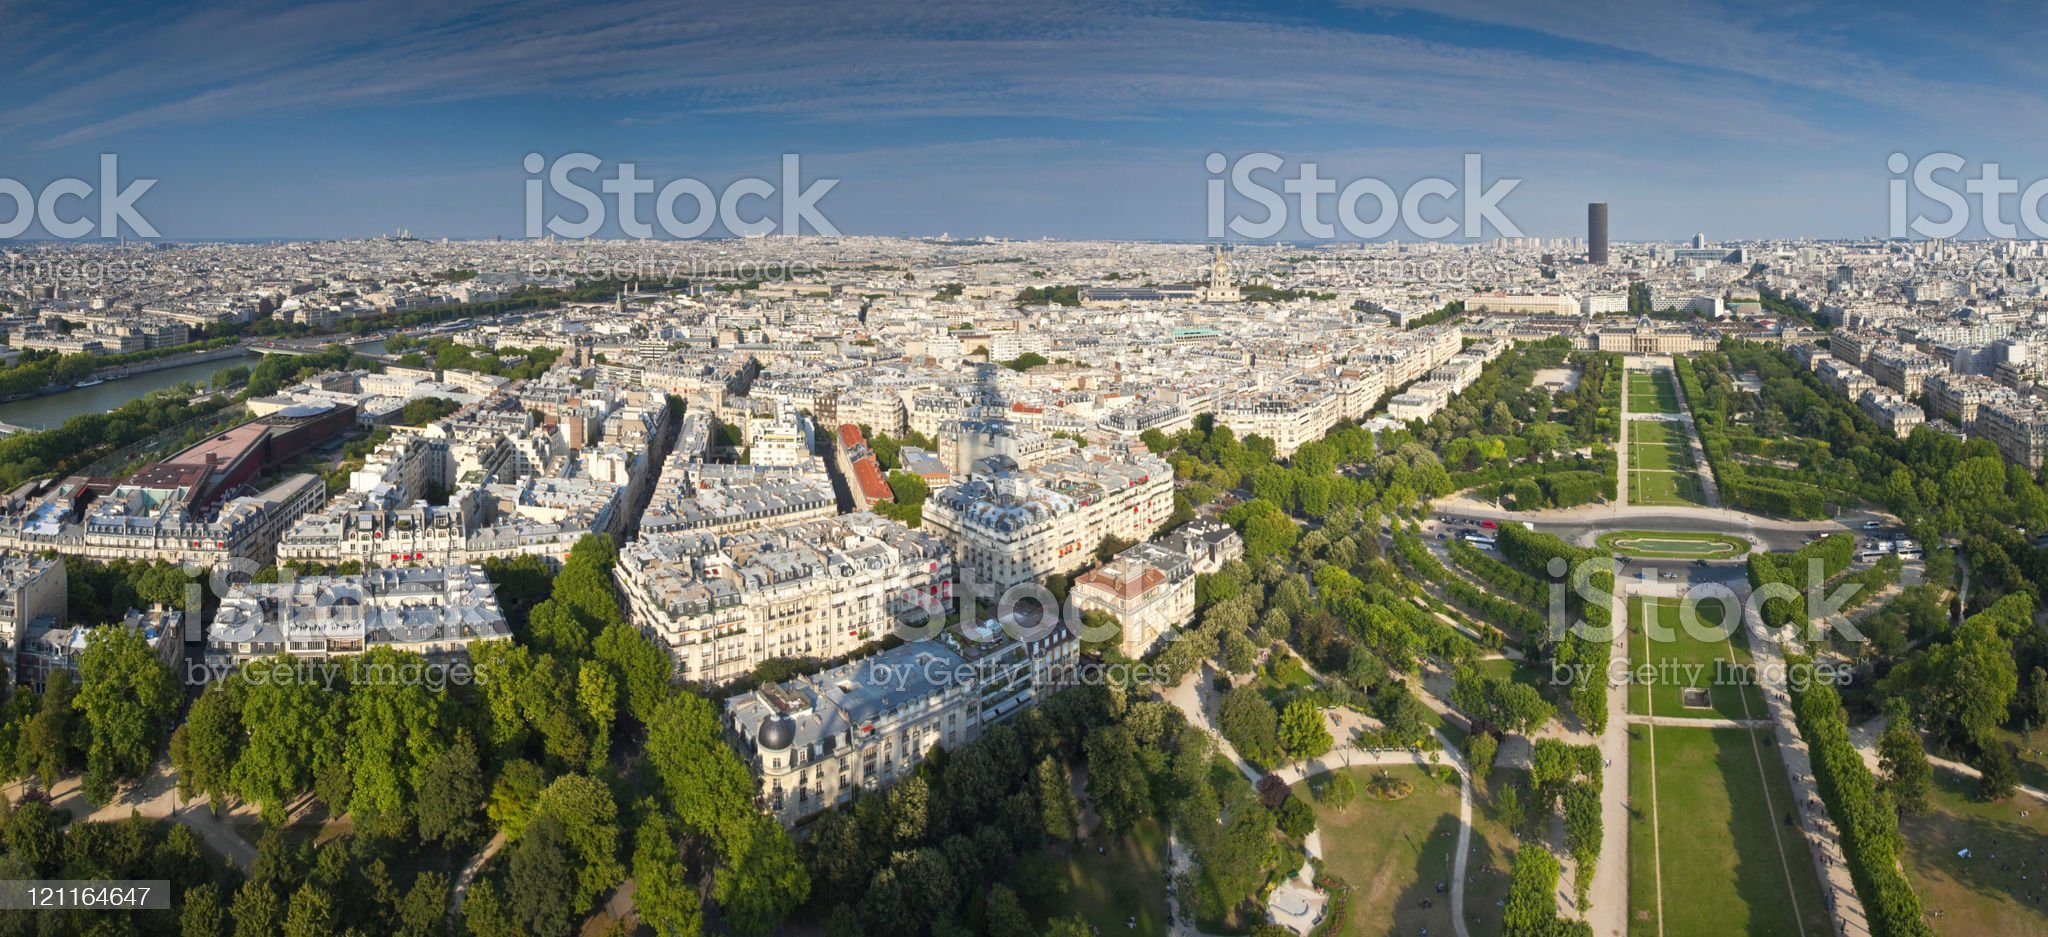 Shadow of the Eiffel Tower, Paris royalty-free stock photo